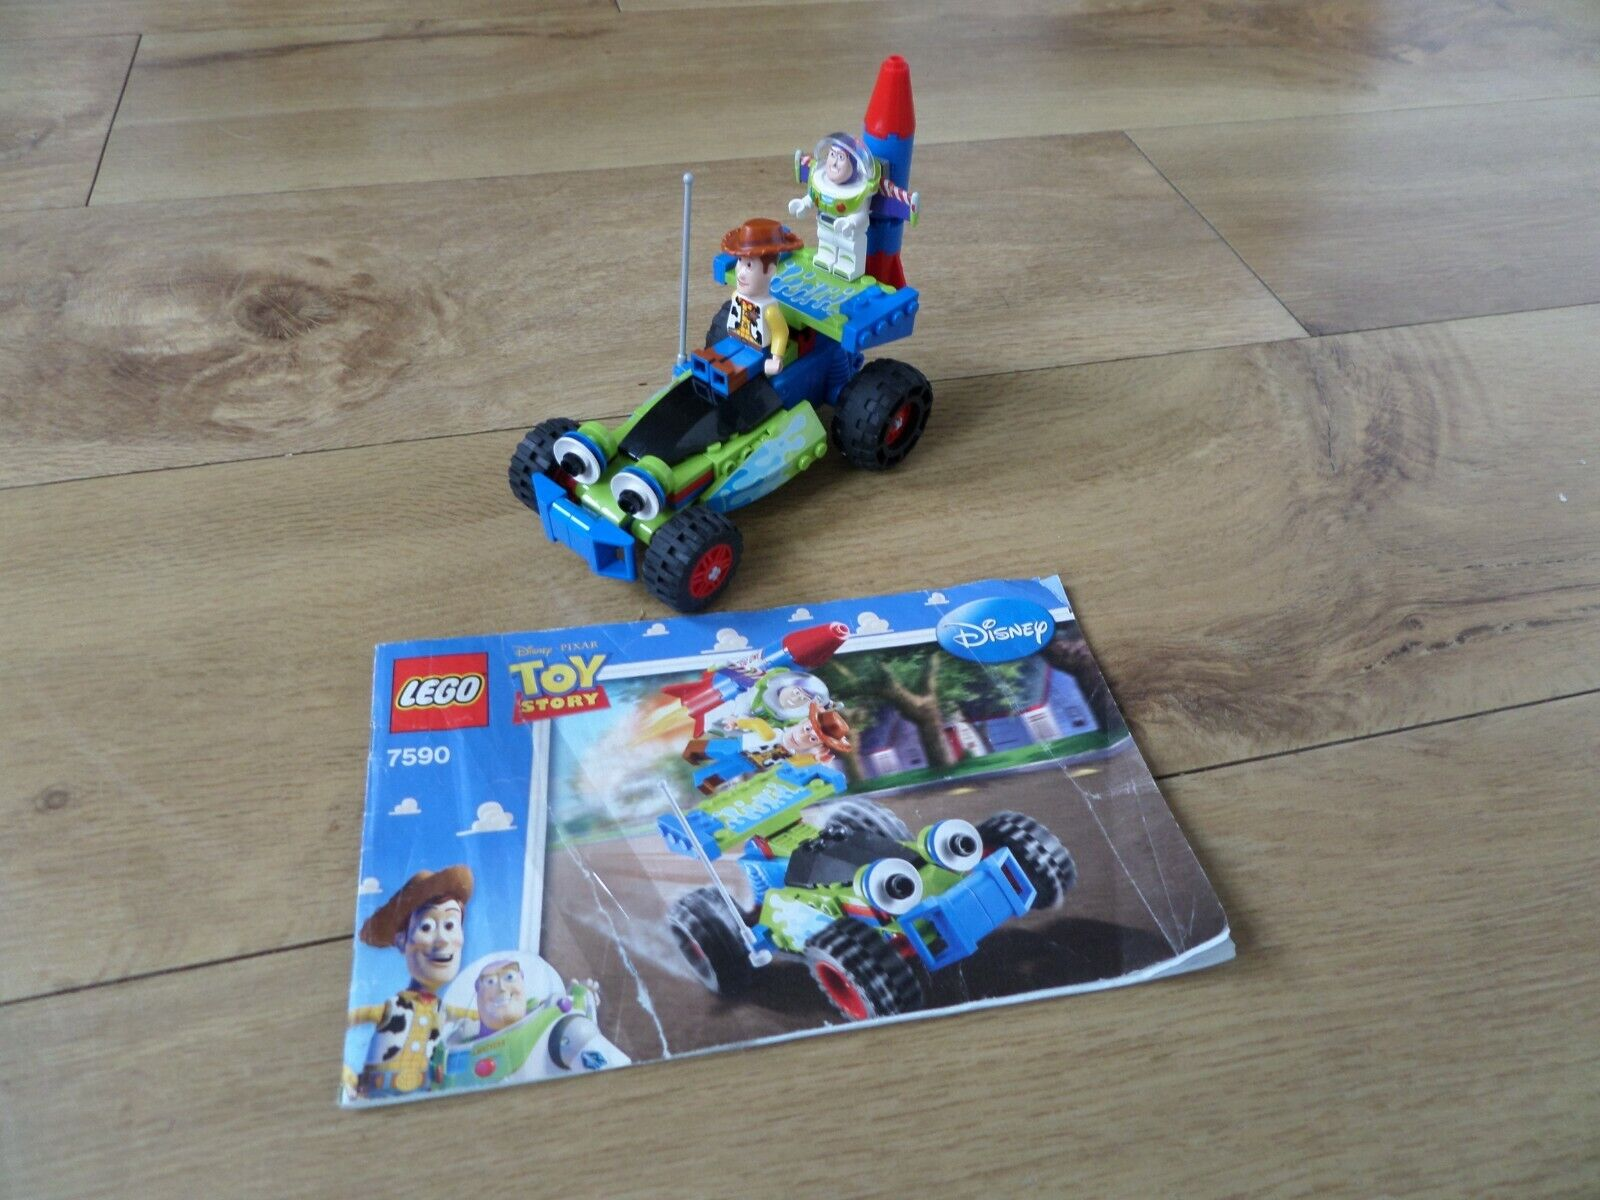 Lego Toy Story 7590 Woody and Buzz to the Rescue 100% with Instructions